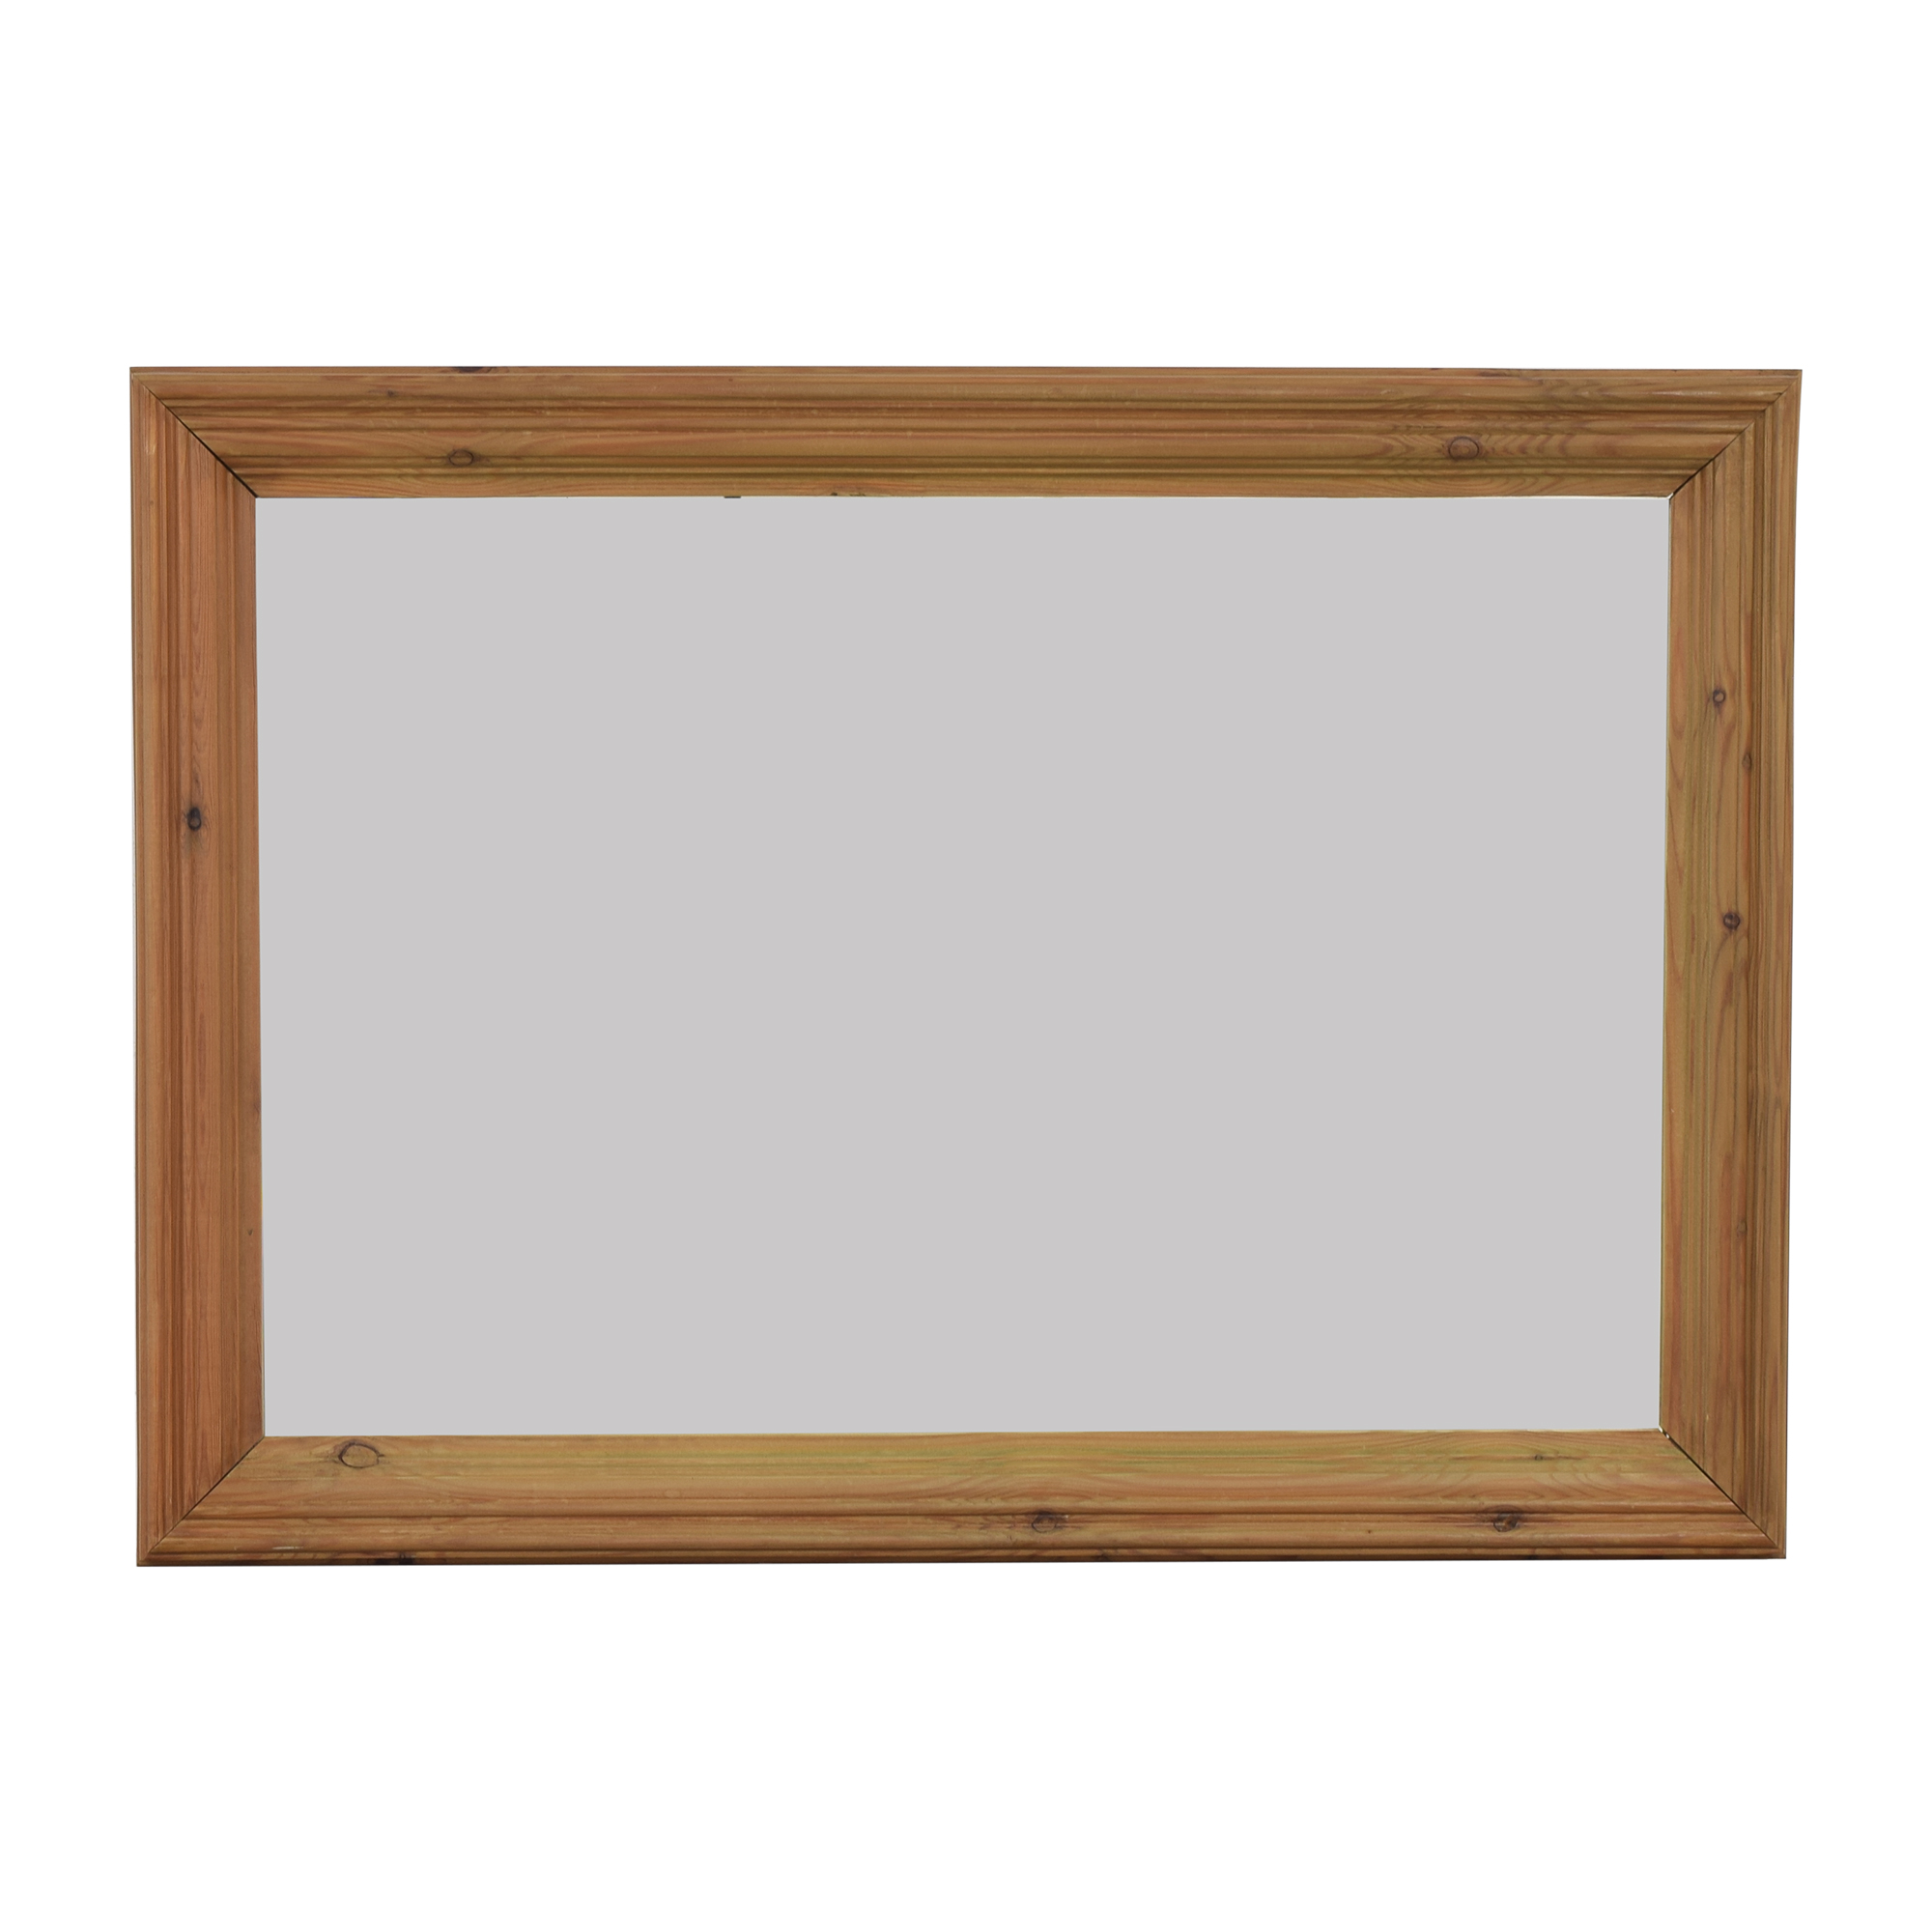 buy  Antique Timber Company Mirror online